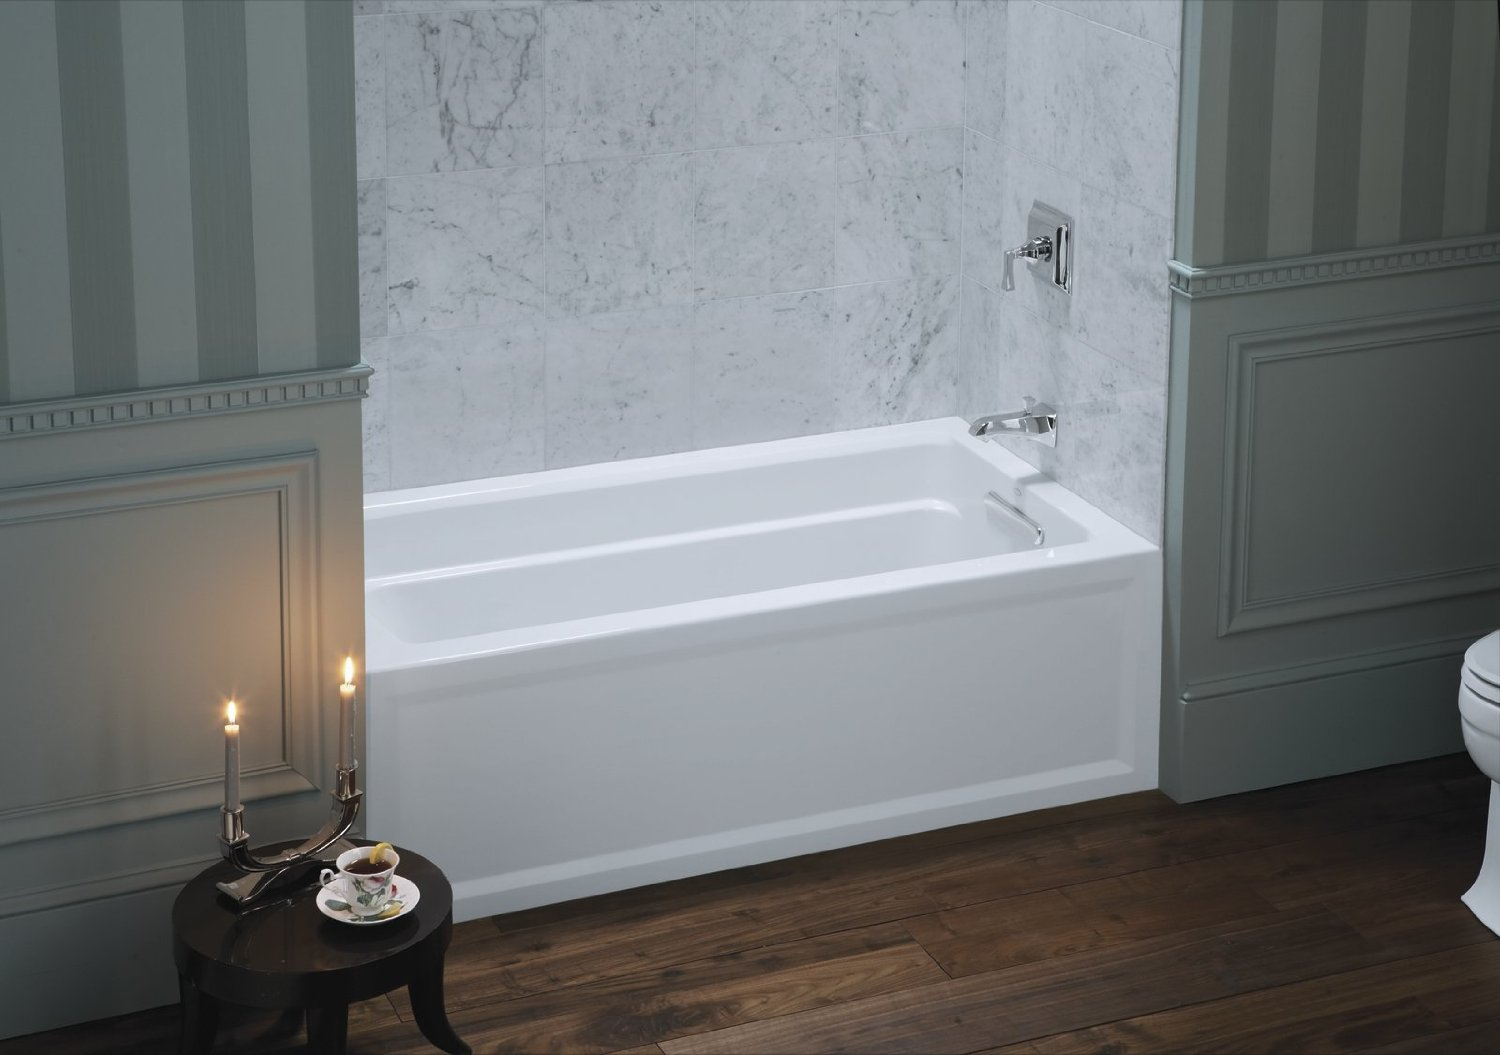 Unique japanese soaking tub kohler homesfeed - Soaking tubs for small bathrooms ...